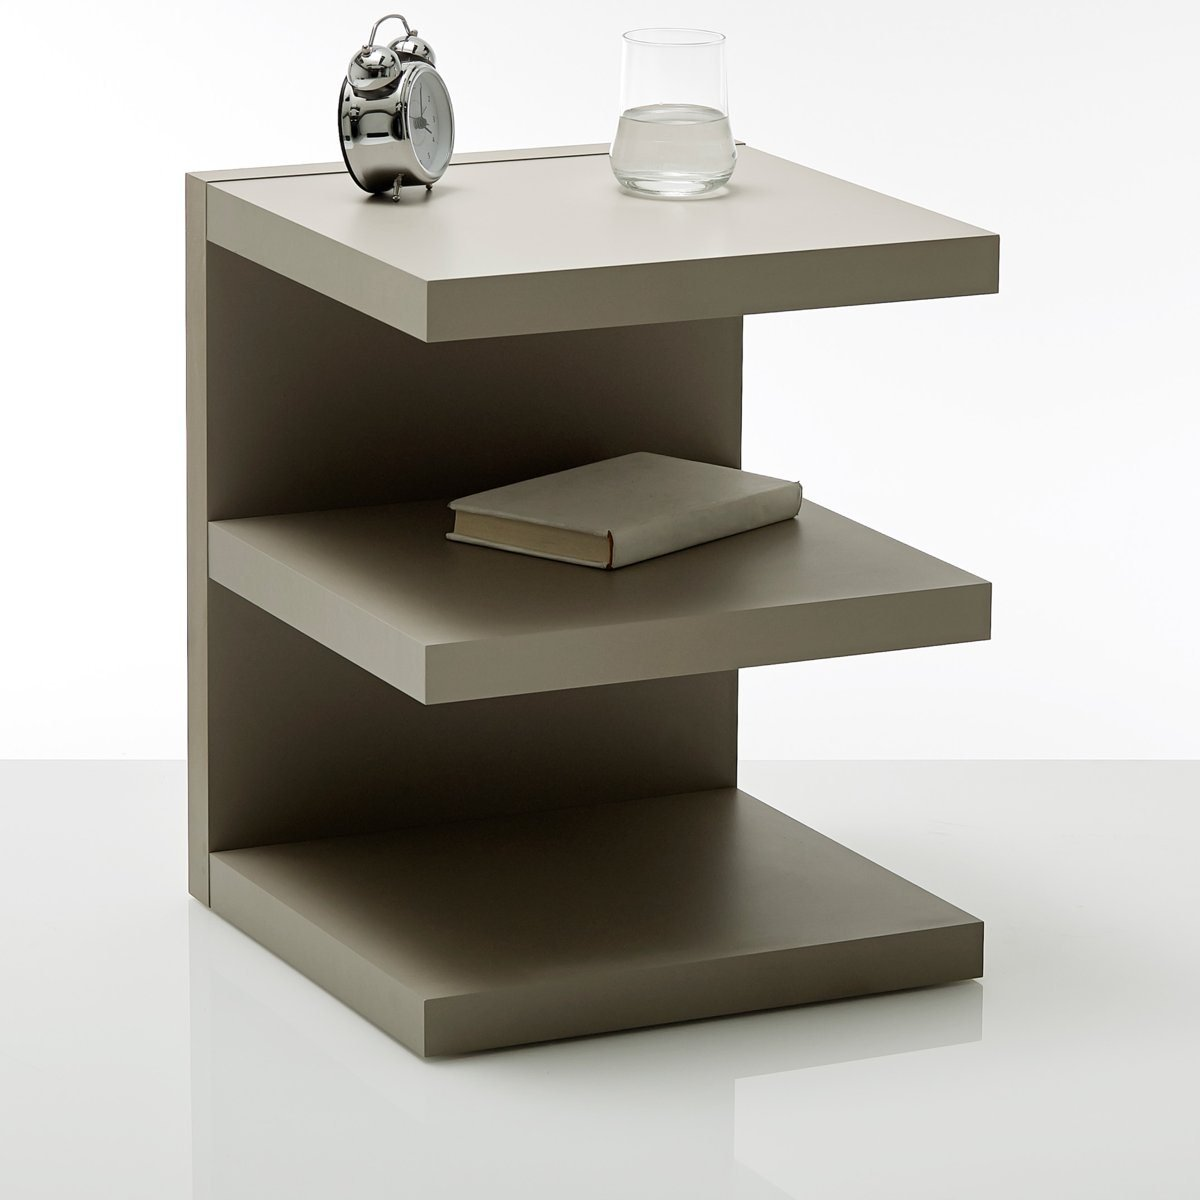 La Redoute Interieurs Ylex Bedside Shelves Brown Size One Size